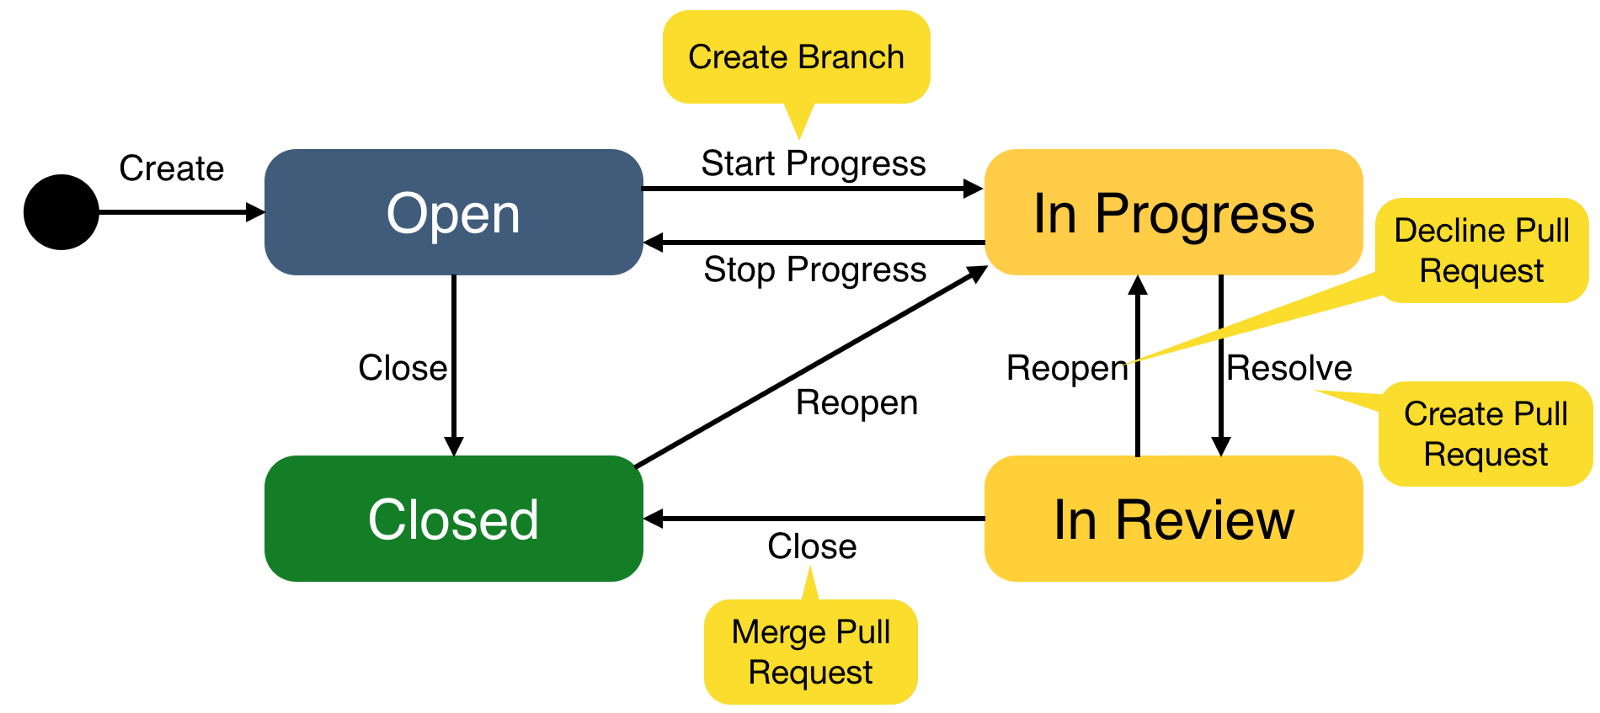 The issue transition workflow, with automatic triggers in the yellow bubbles.